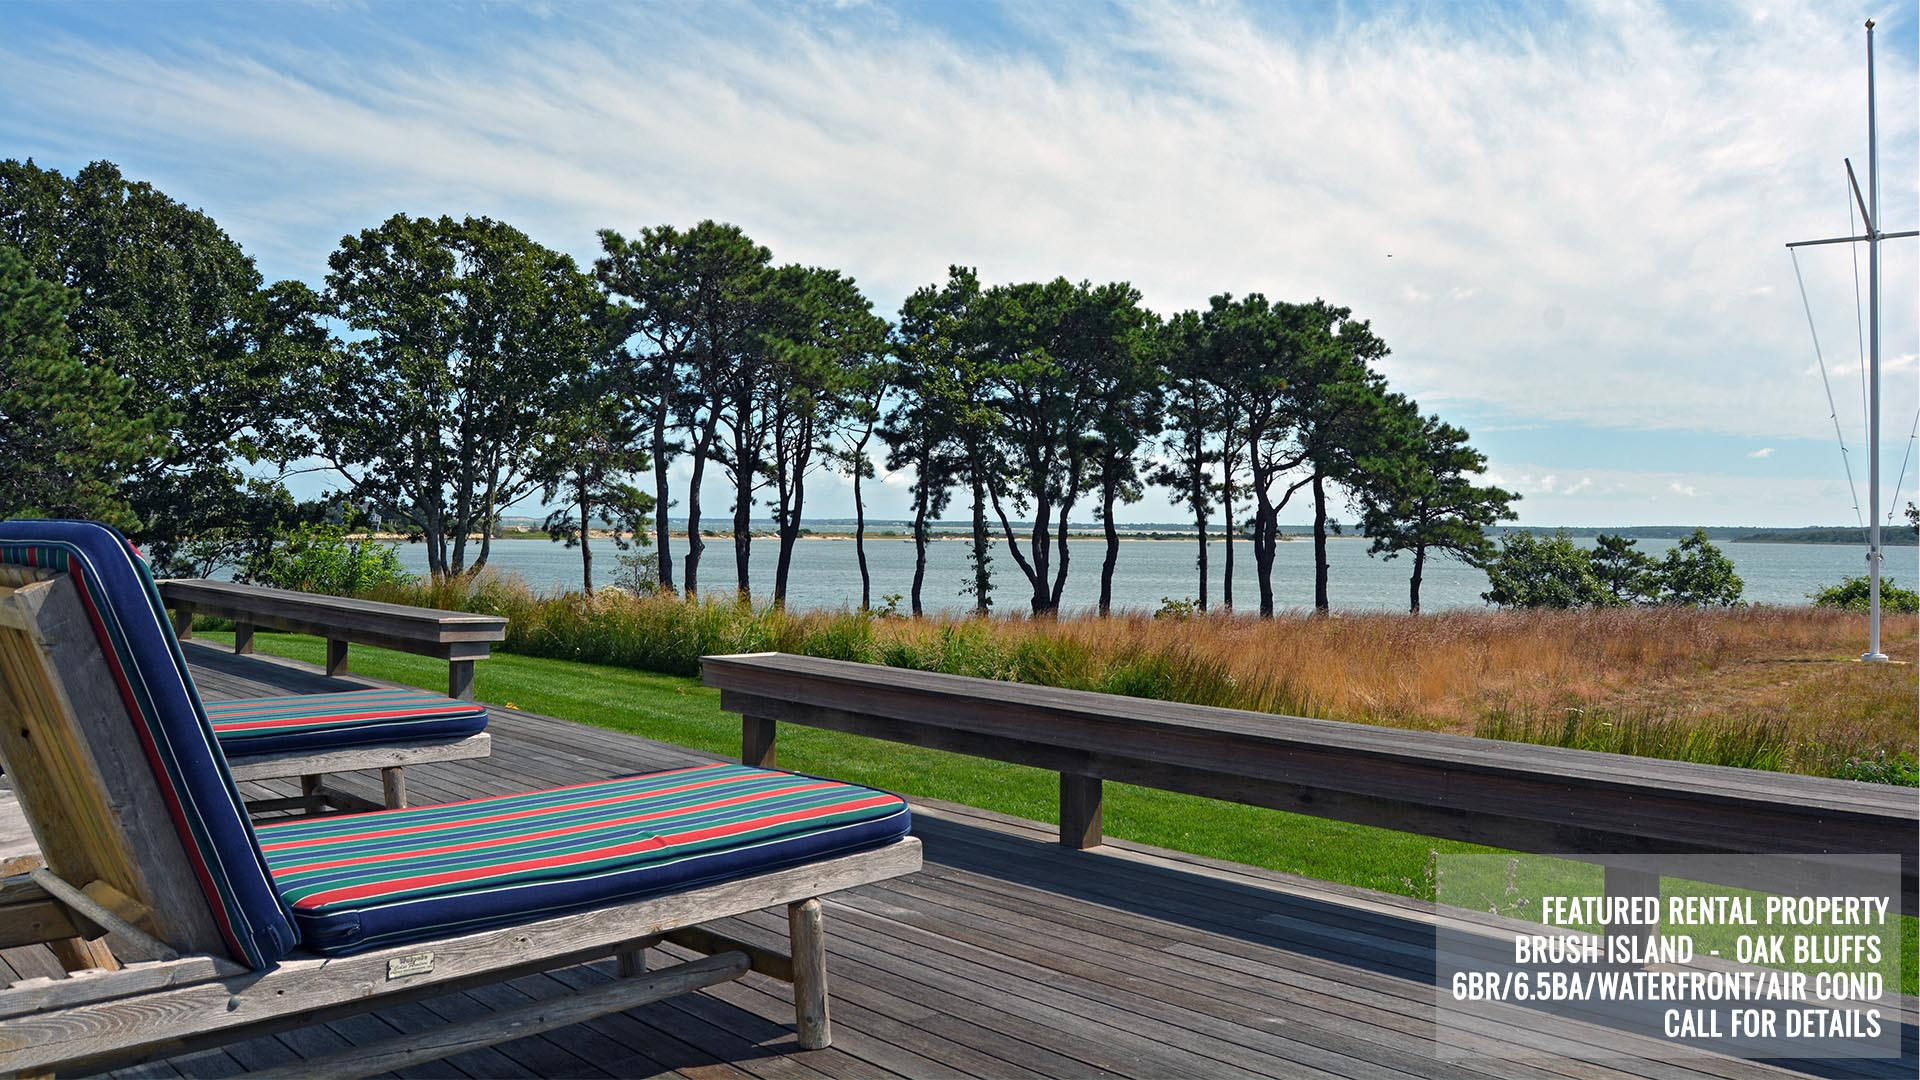 Brush Island, Oak Bluffs, Martha's Vineyard